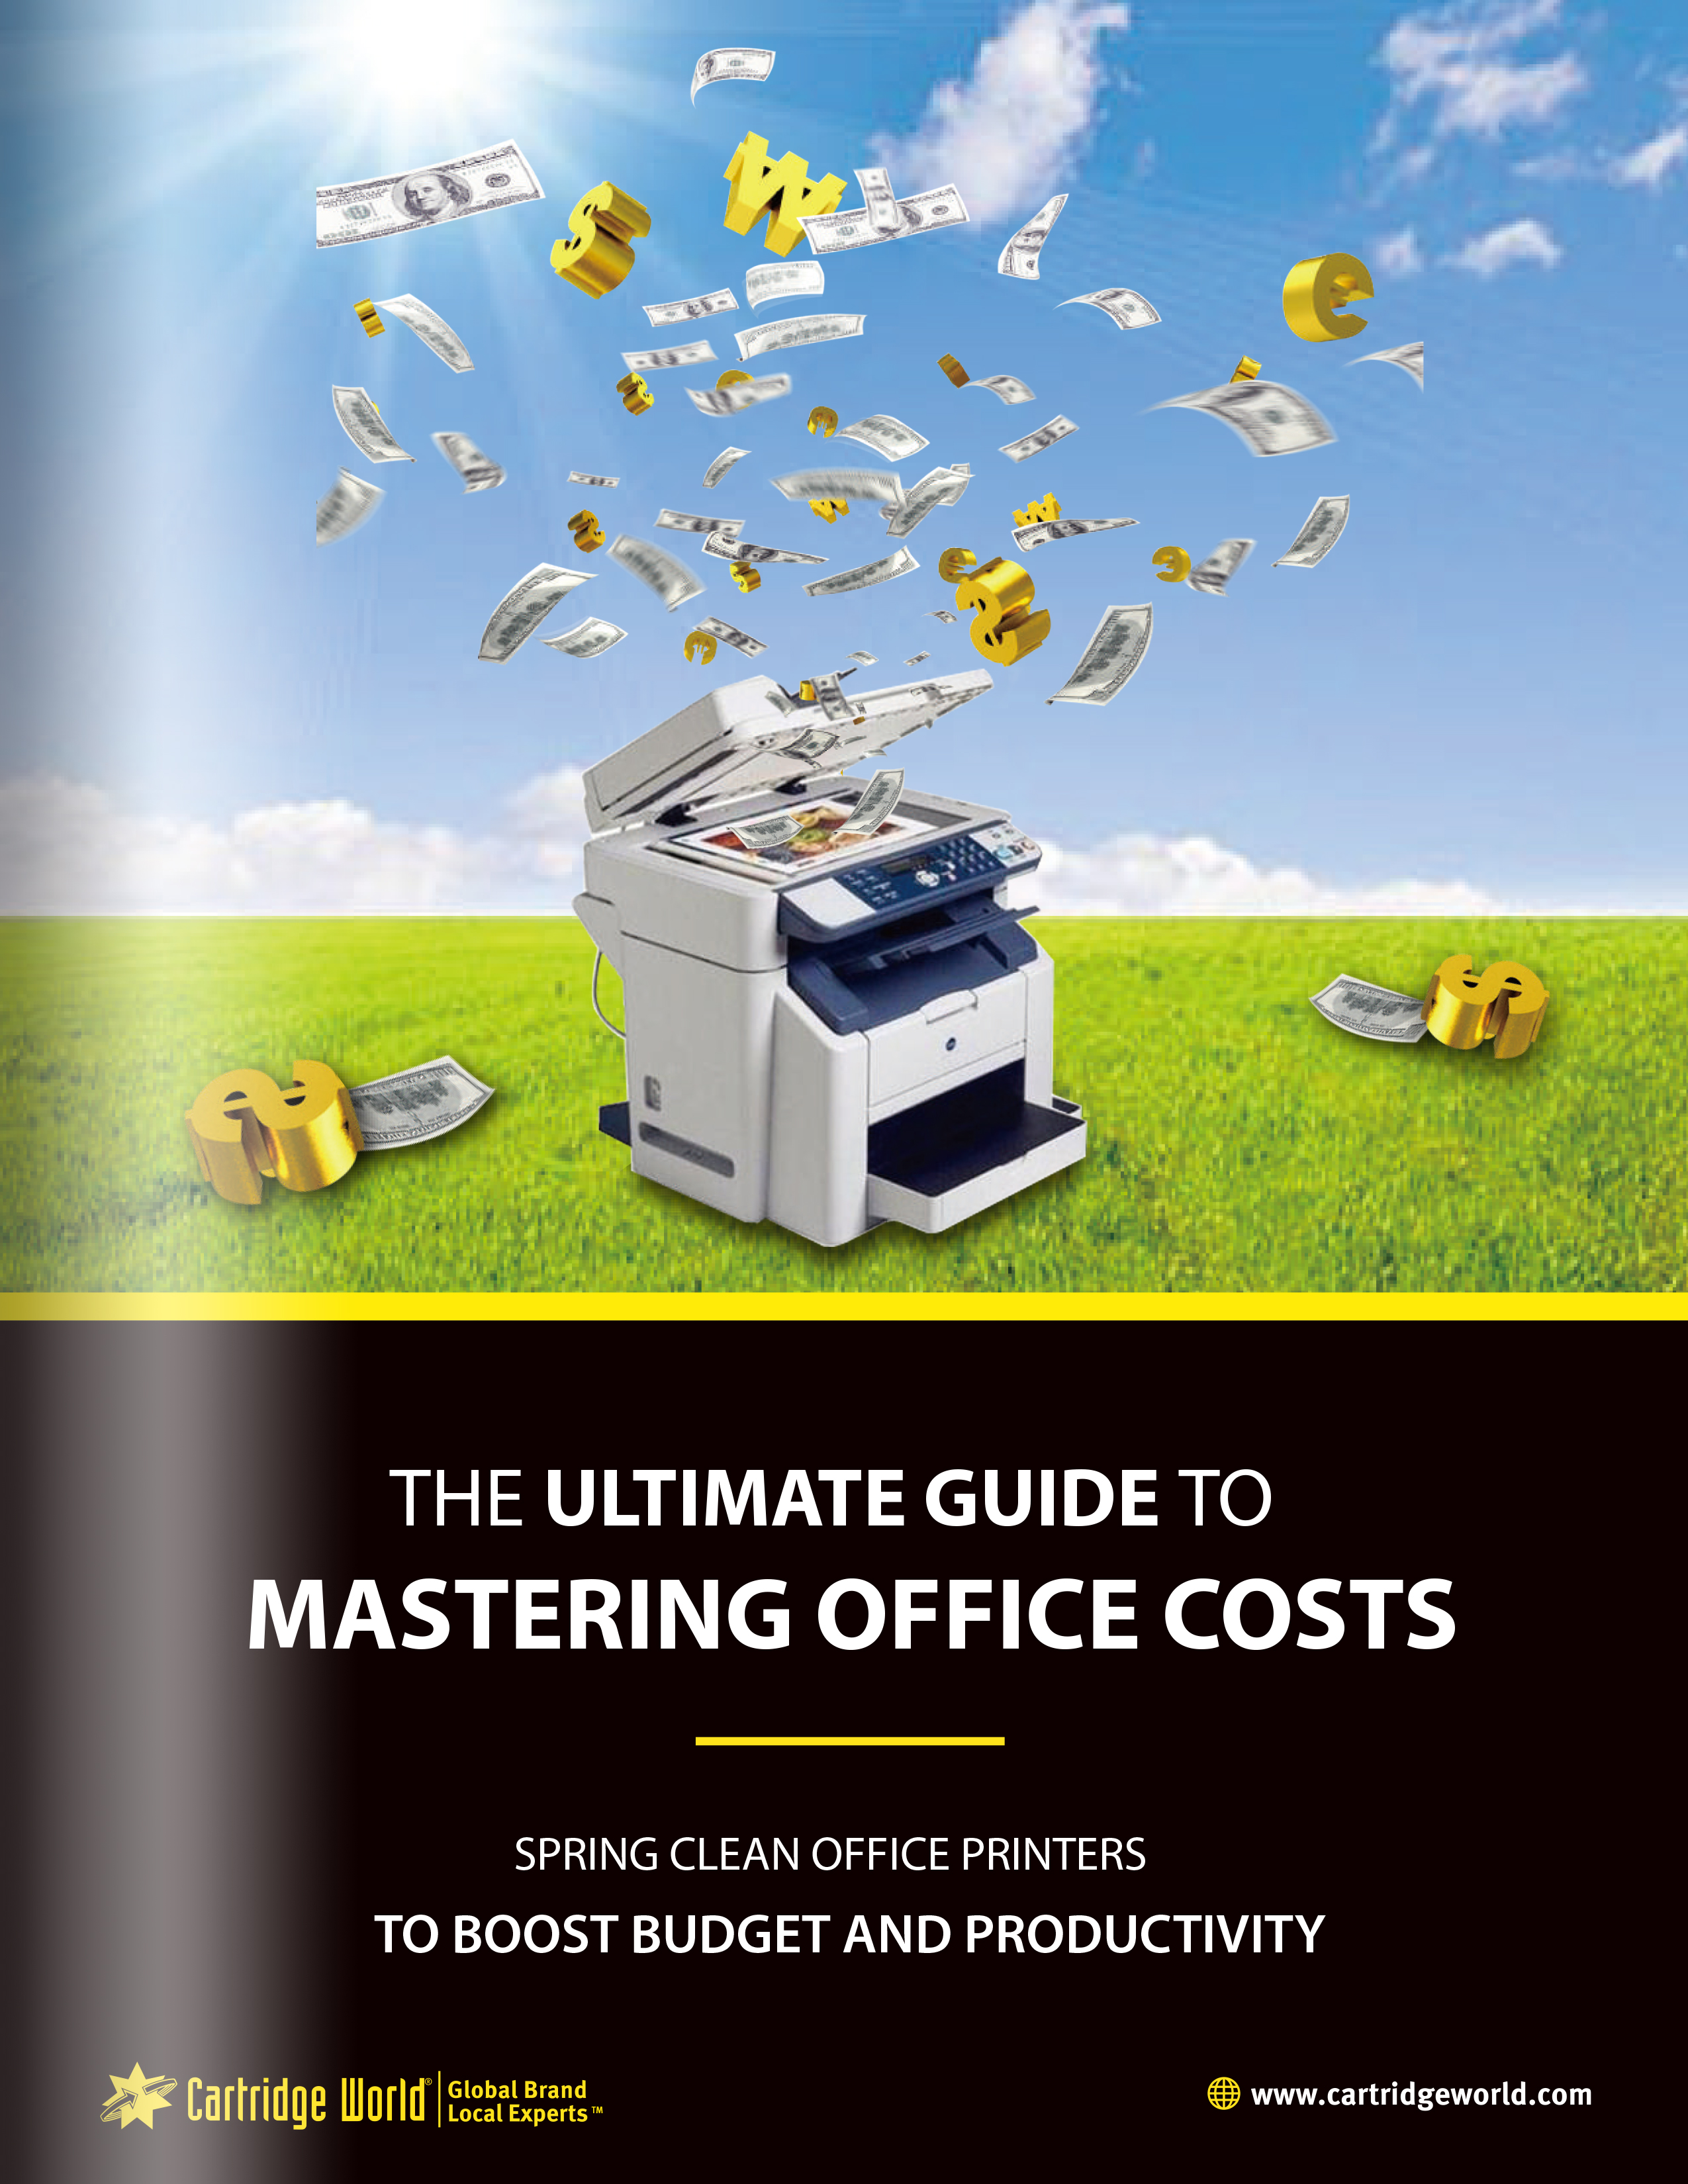 The Ultimate Guide to Mastering Office Costs